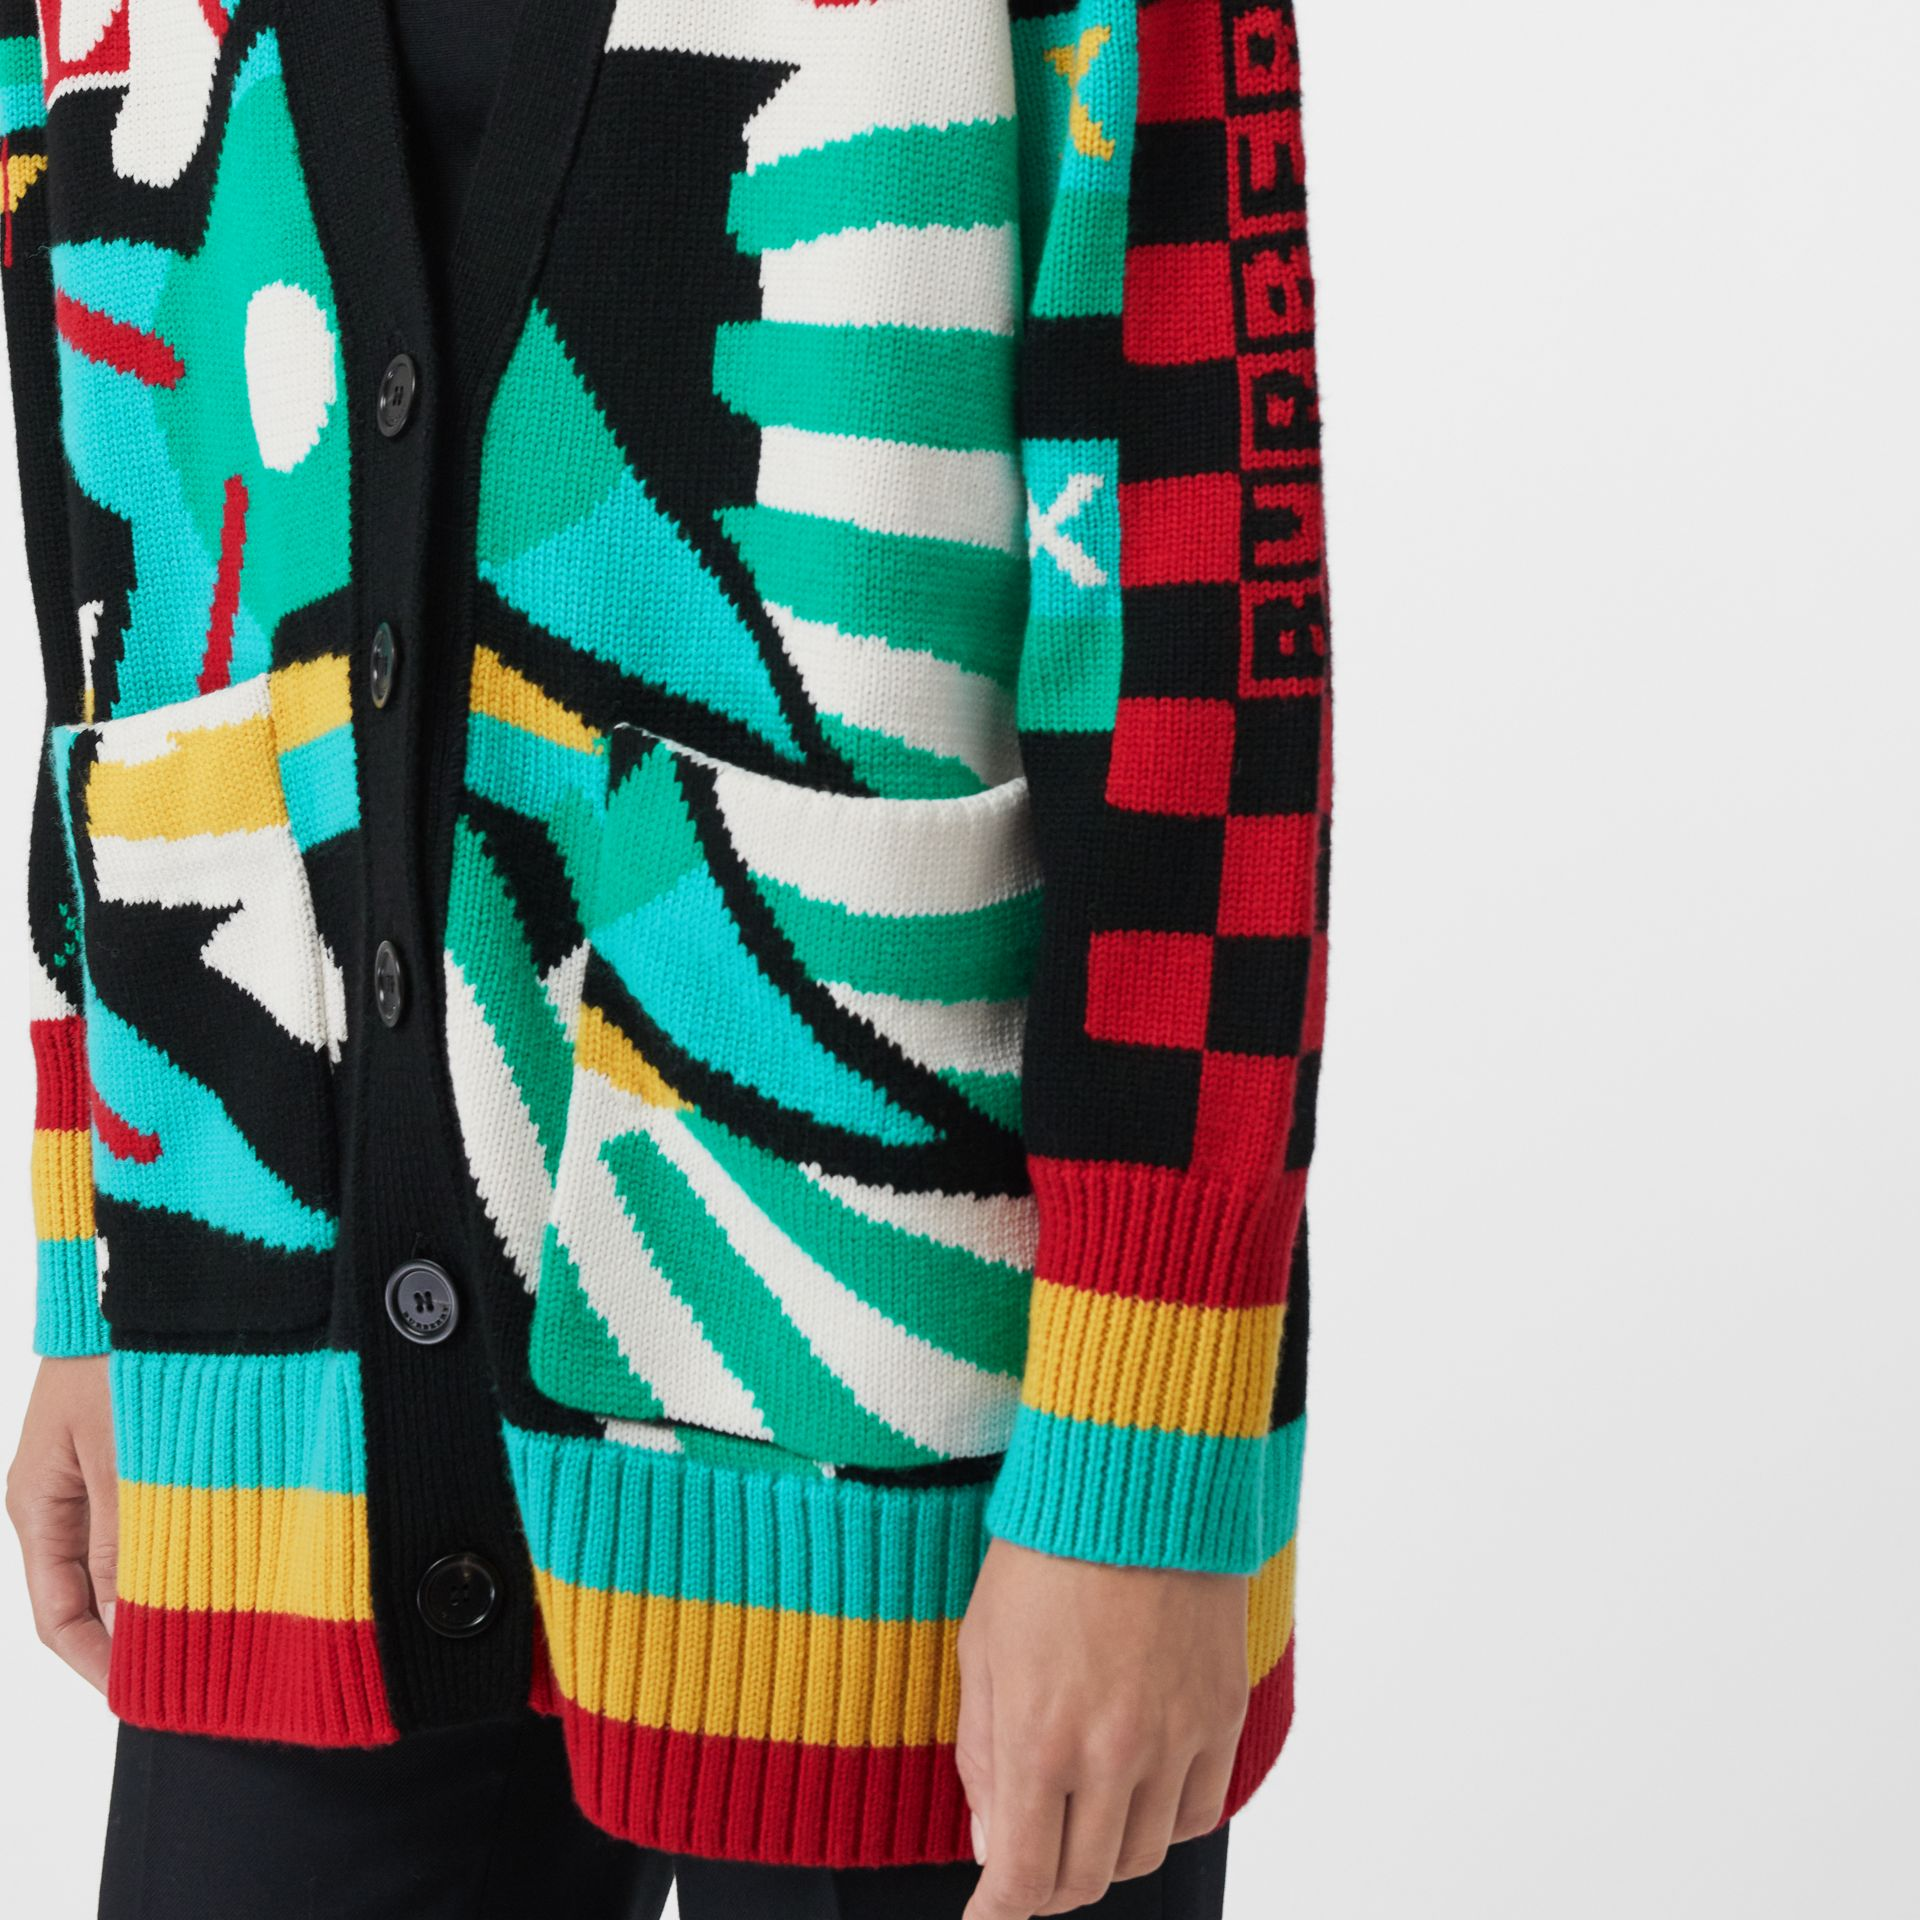 Graphic Intarsia Merino Wool Cotton Cardigan in Multicolour - Women | Burberry Singapore - gallery image 1